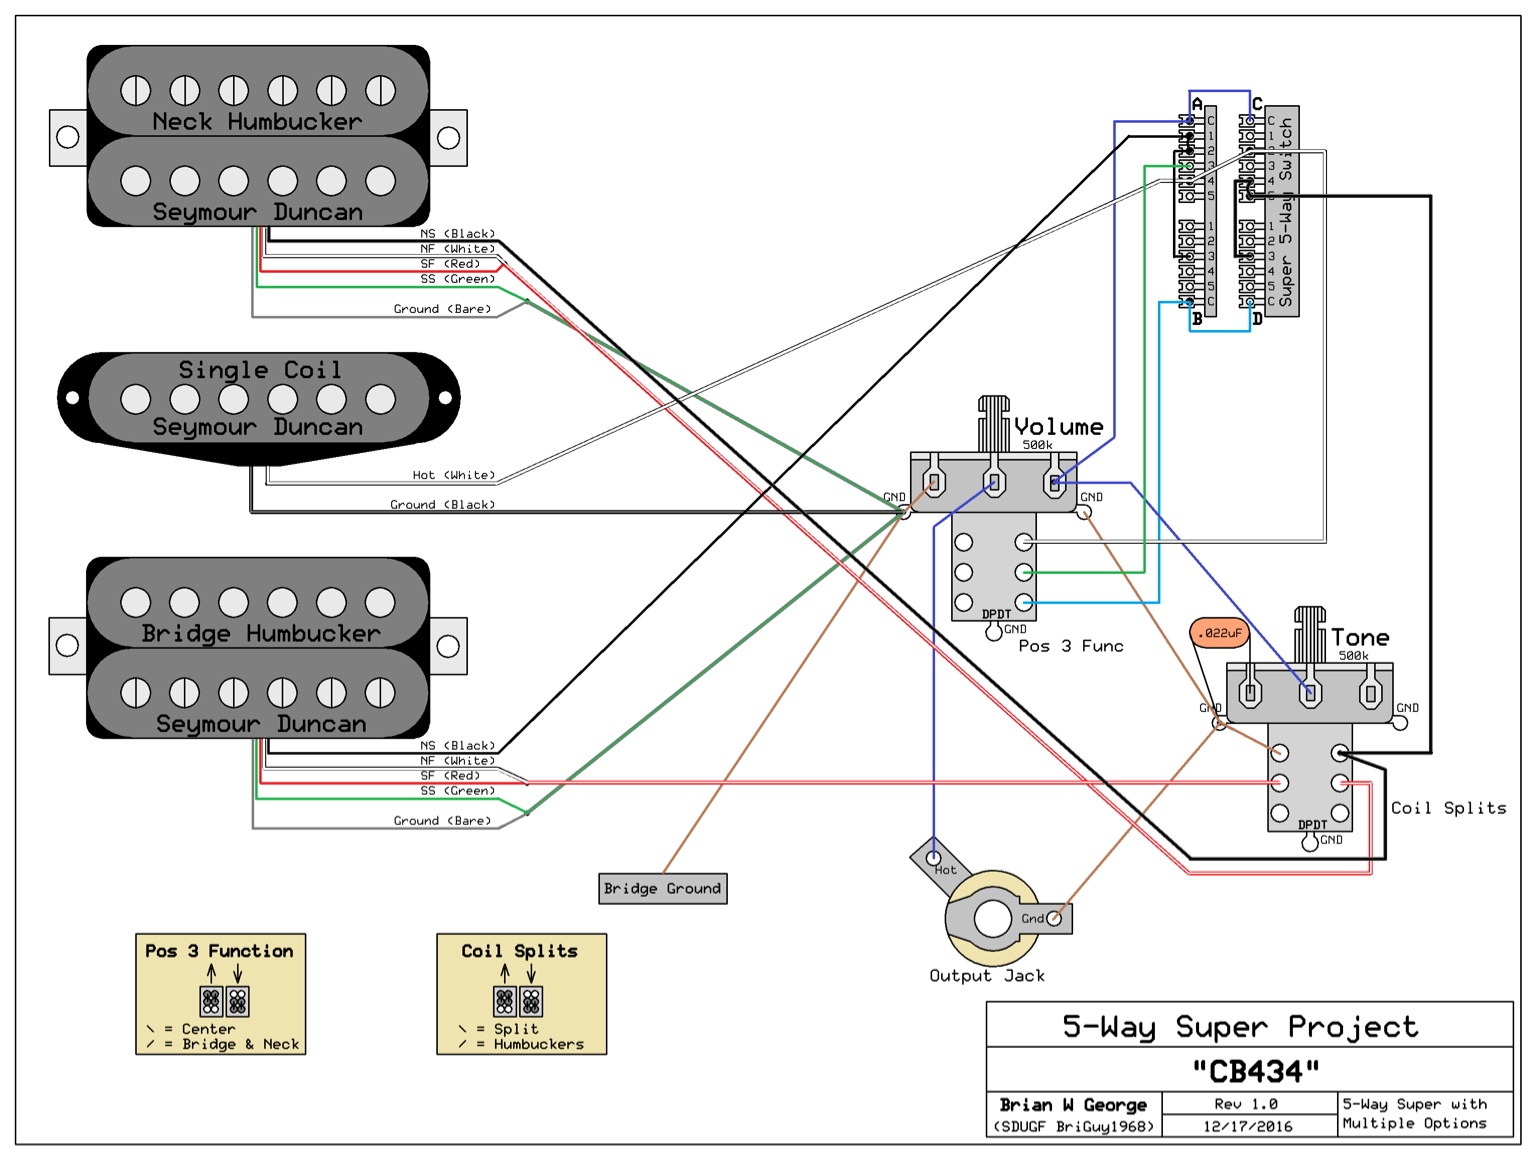 For Split Humbuckers Wiring Diagrams 5 Way Superswitch H S H Advice